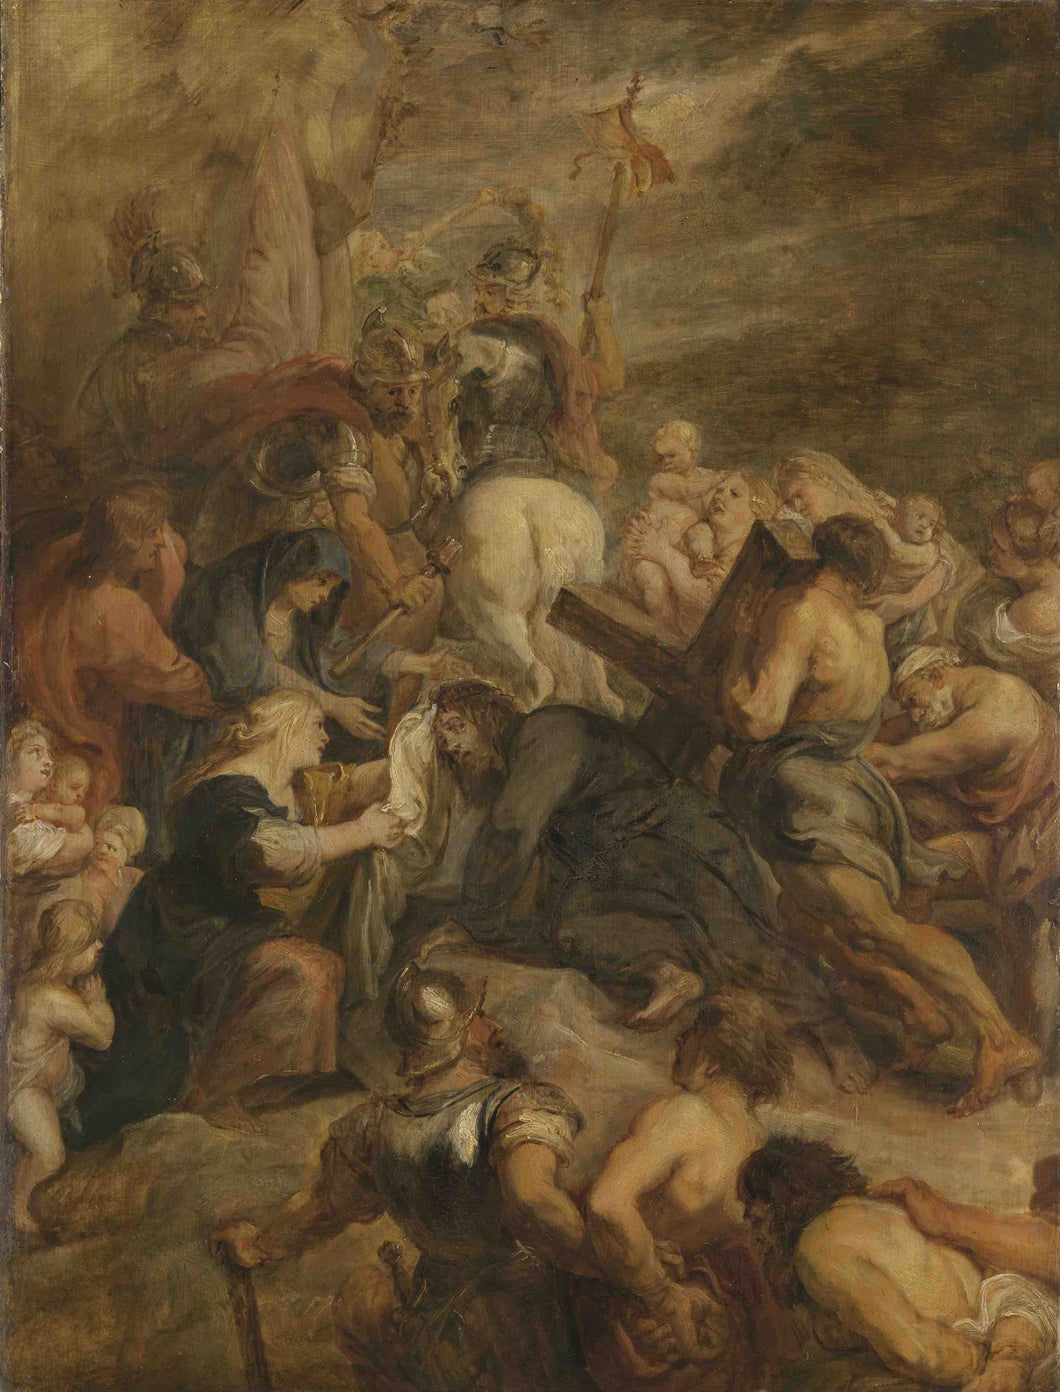 Peter Paul Rubens, The Carrying of the Cross